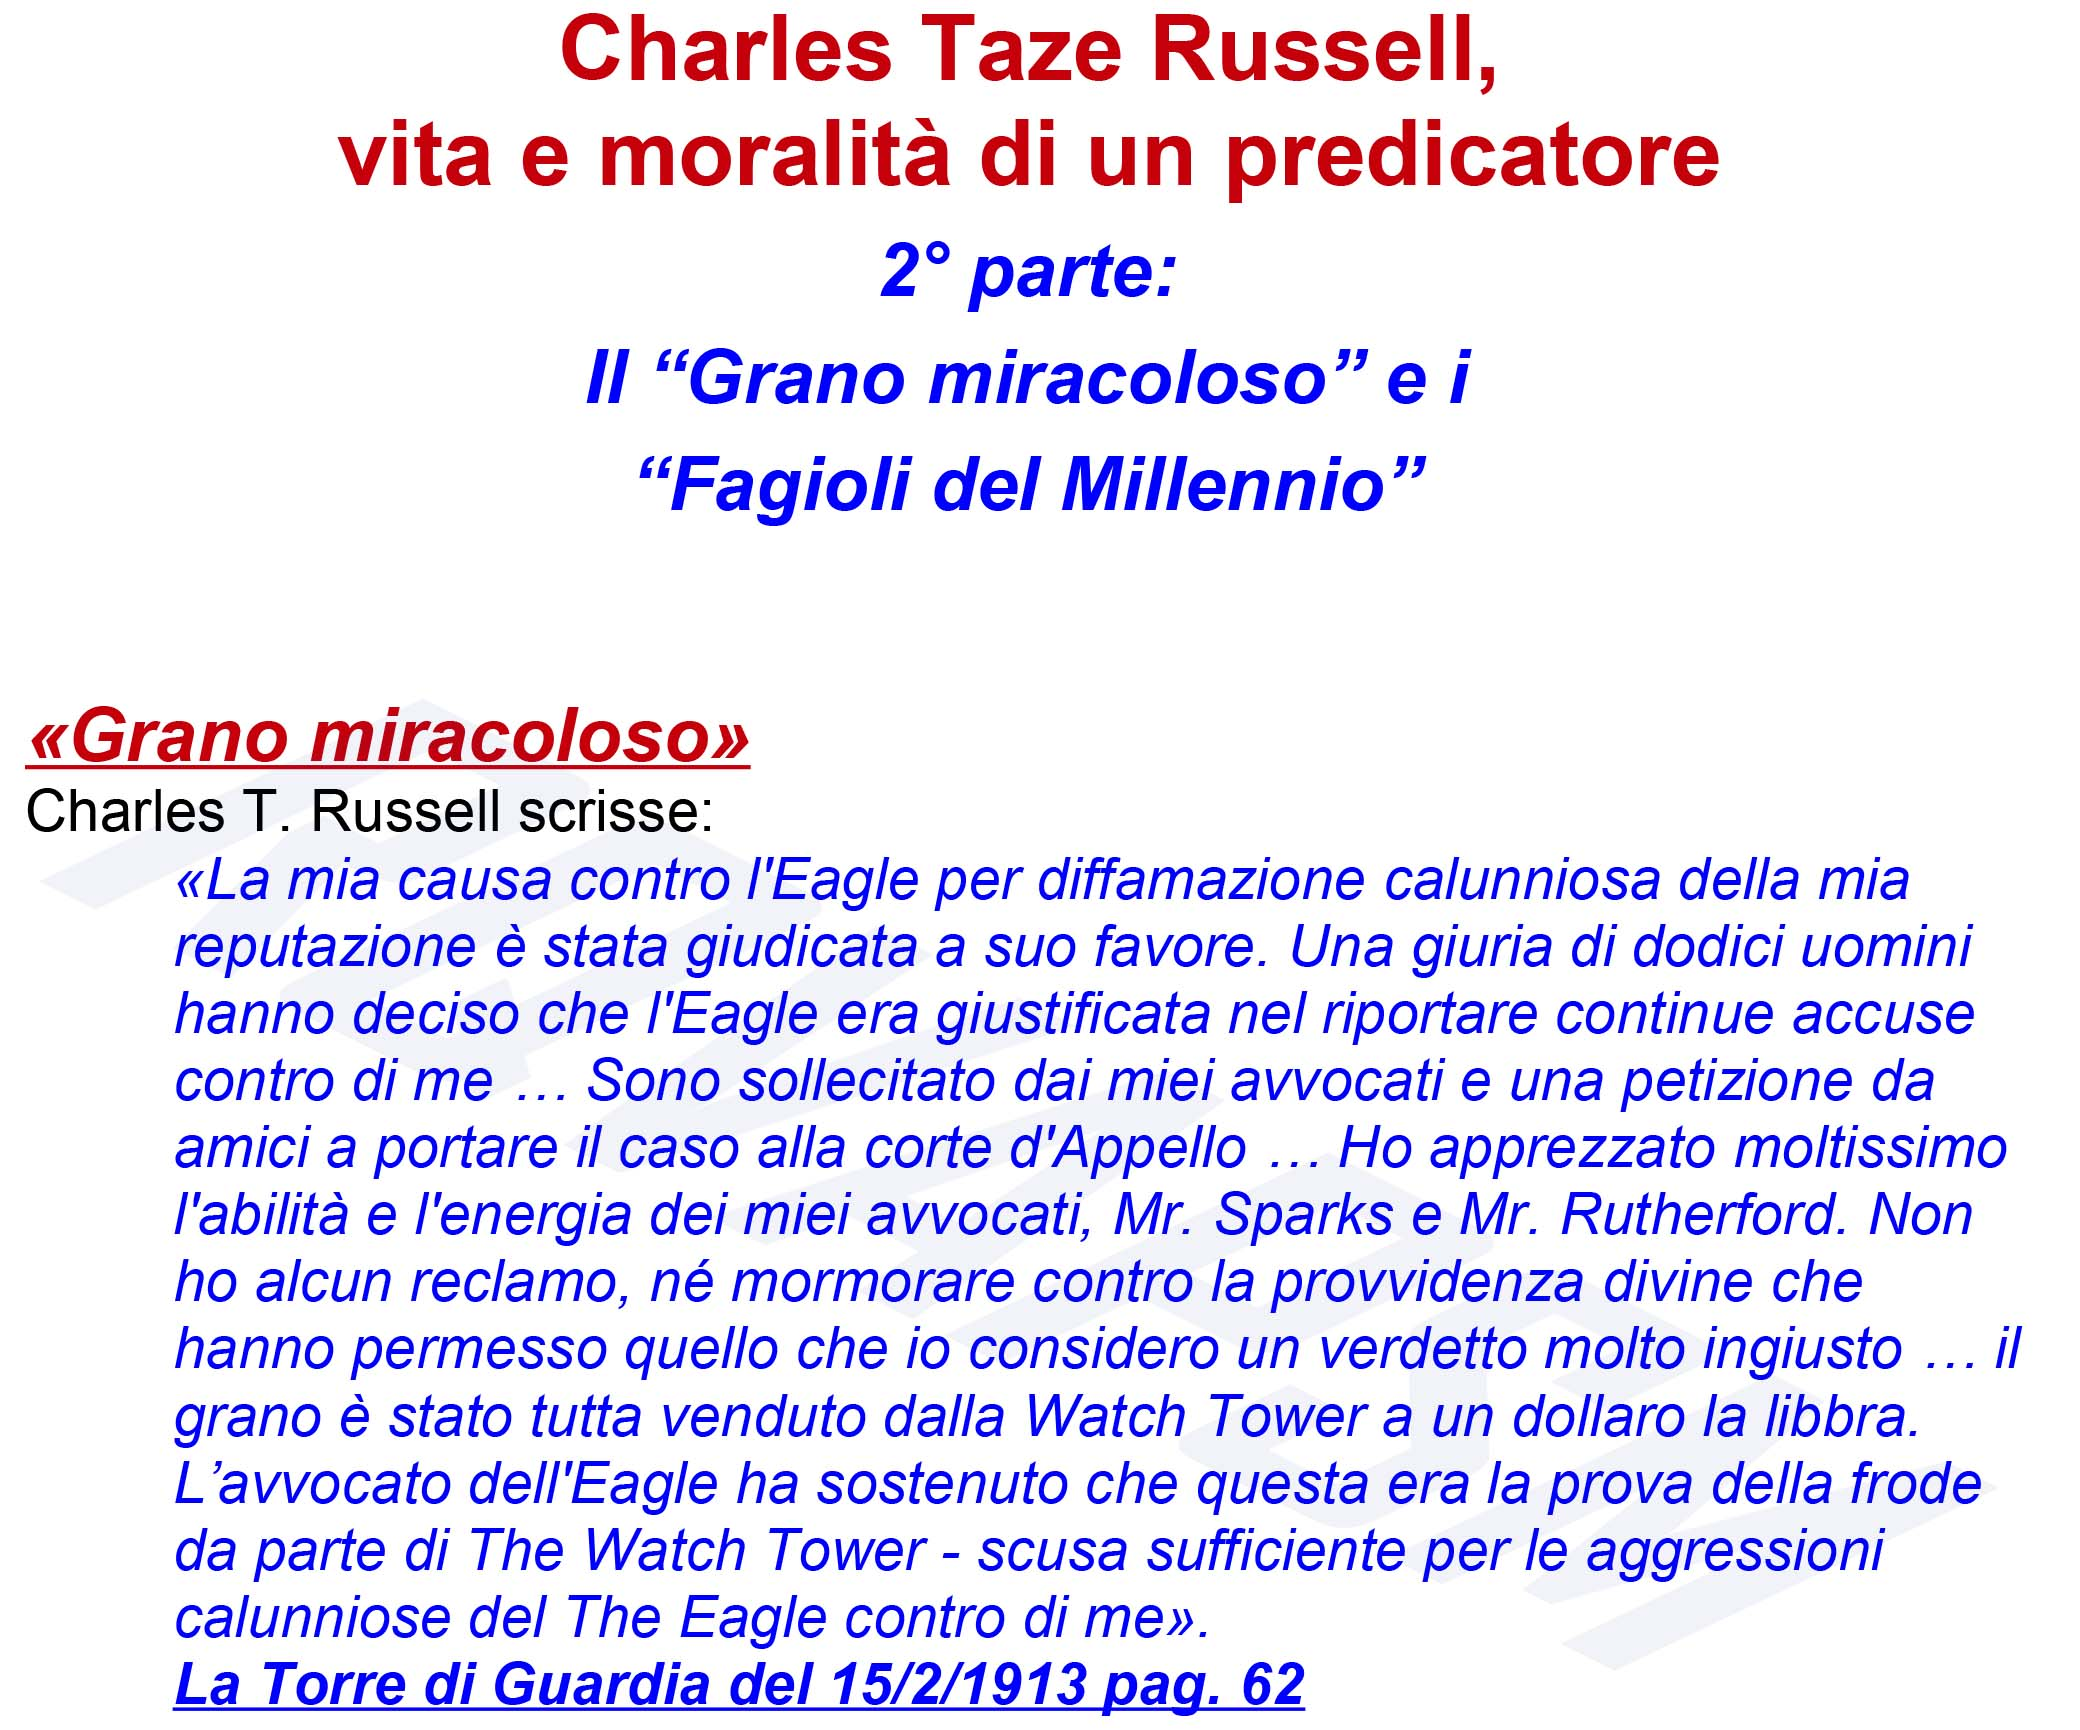 Charles-Taze-Russell-2-1